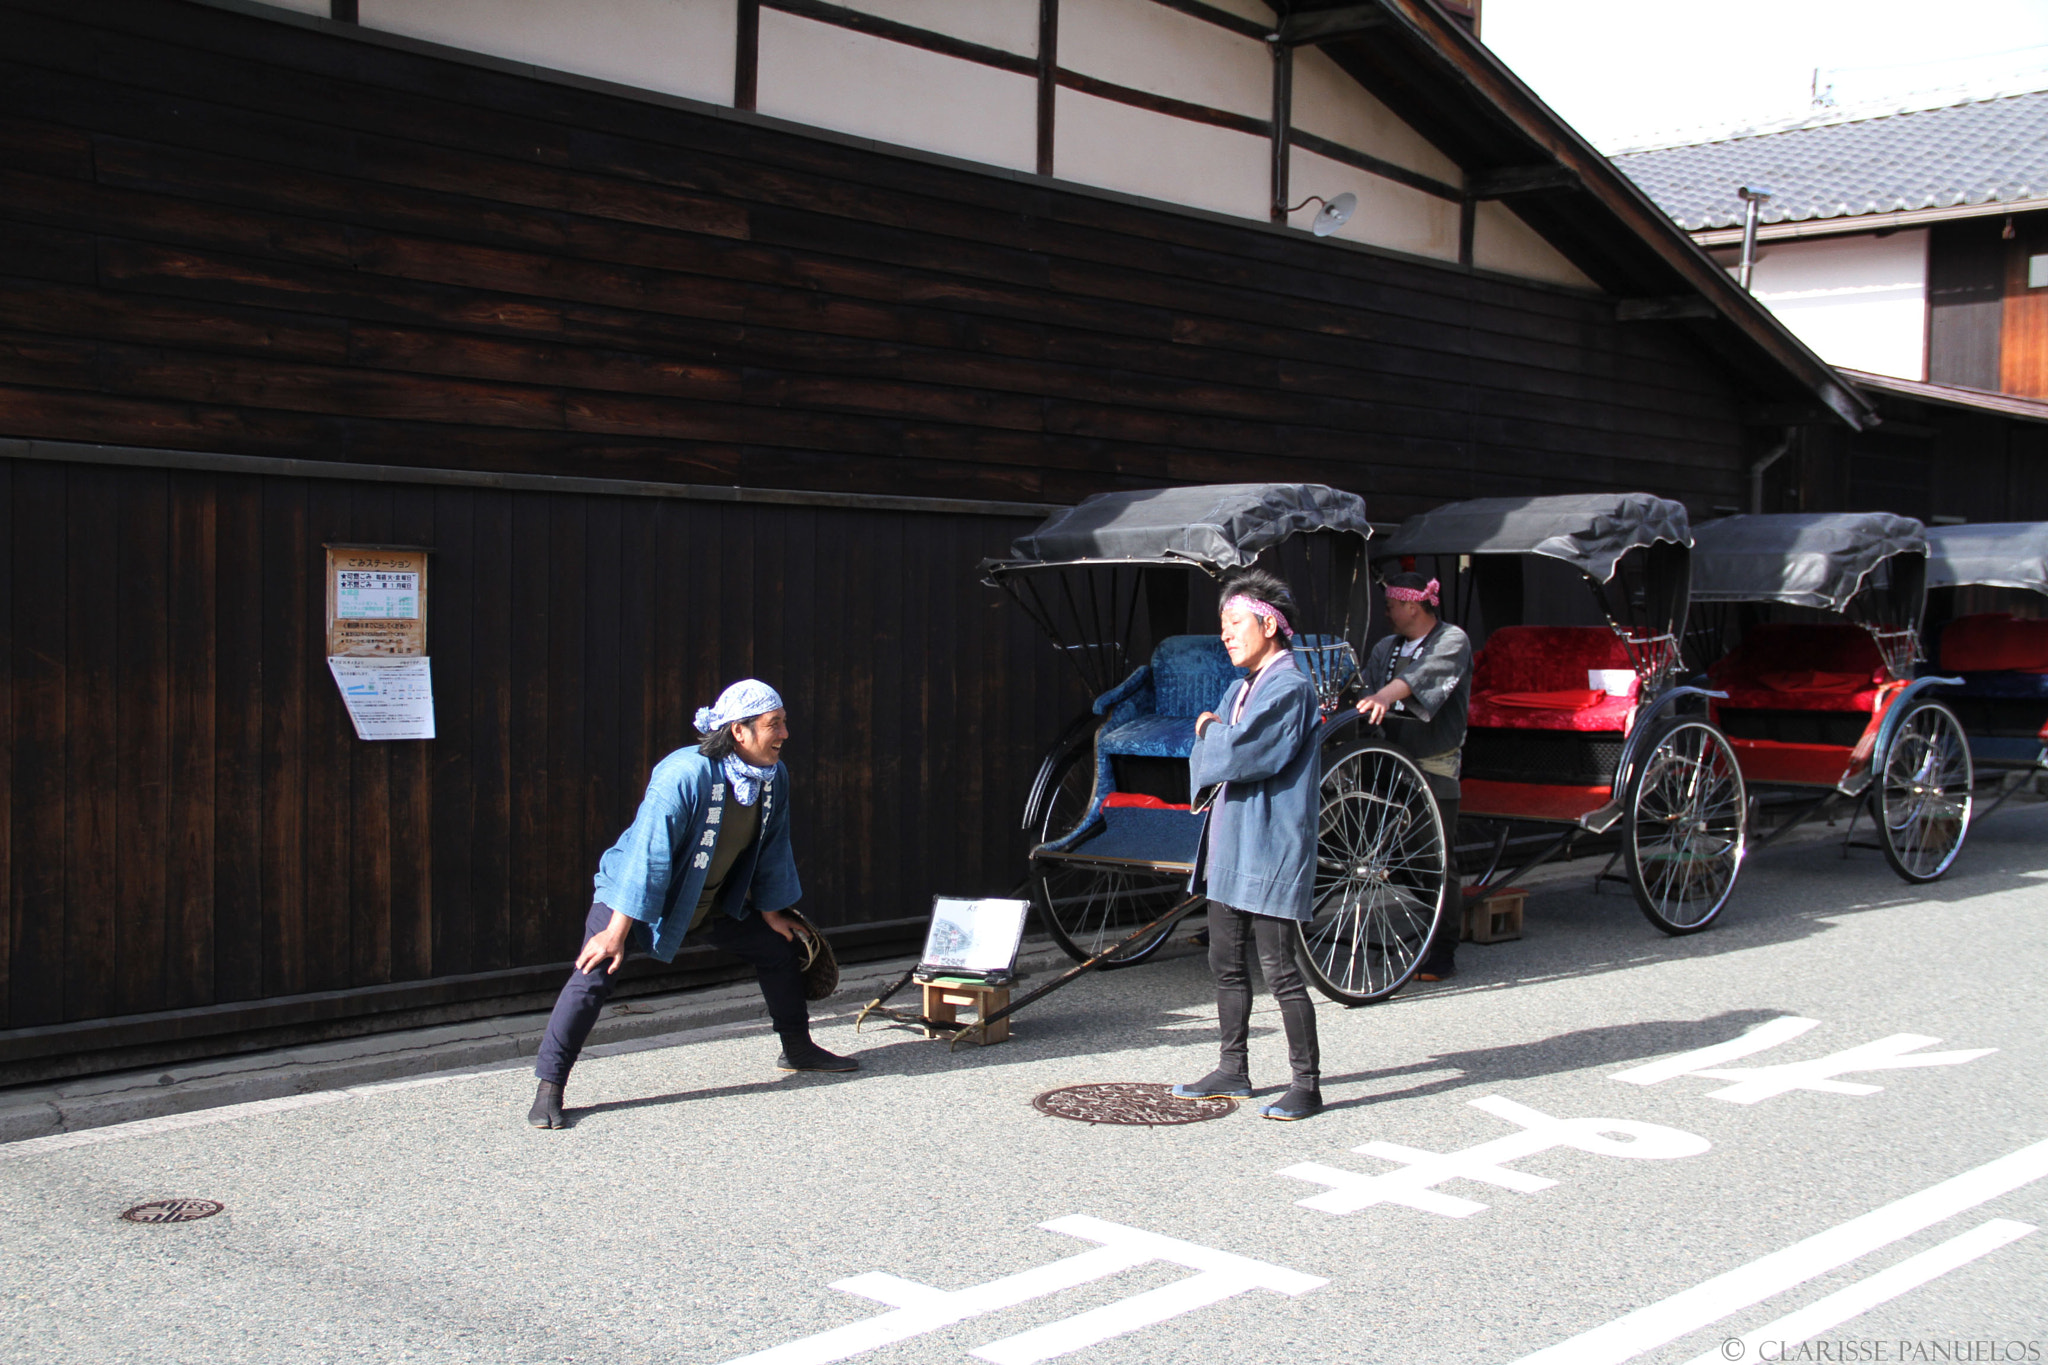 82a56fc0bdc2a0c670b7425a68f1b4d3 - Japan Travel Blog April 2015: Takayama Old Town